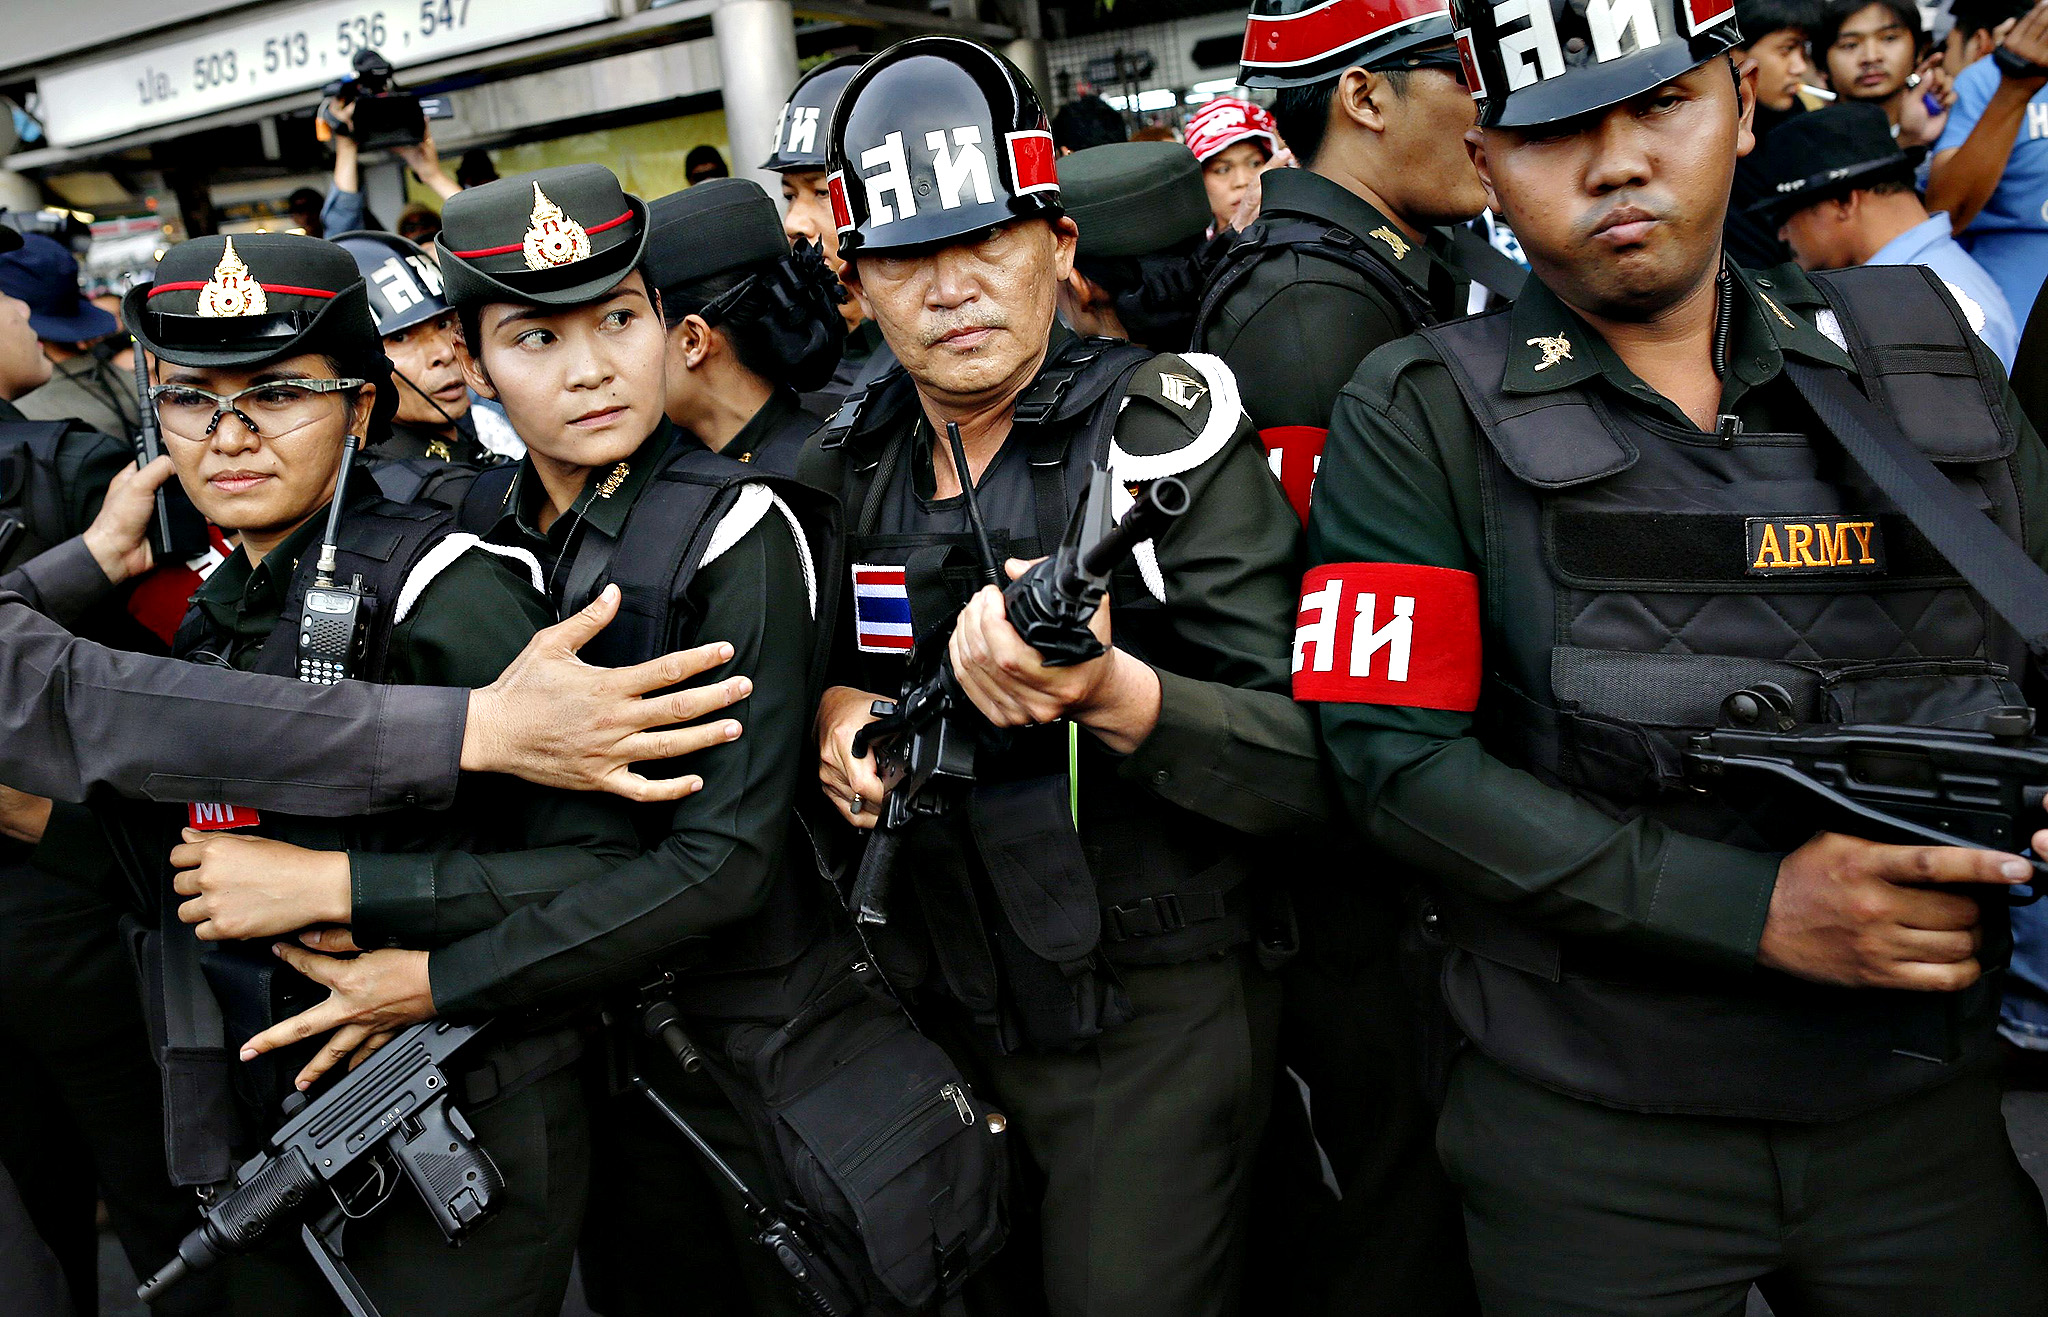 "Military policemen hold their weapons as they are surrounded by a mob during a confrontation between anti-coup protesters and military at the Victory monument in Bangkok...Military policemen hold their weapons as they are surrounded by a mob during a confrontation between anti-coup protesters and military at the Victory monument in Bangkok May 28, 2014. There have been daily protests in Bangkok against the coup and on Wednesday about 200 people confronted troops and police at the Victory Monument. Protesters jeered and threw plastic water bottles and spray-painted ""Get Out"" and ""No Coup"" over an army Humvee."